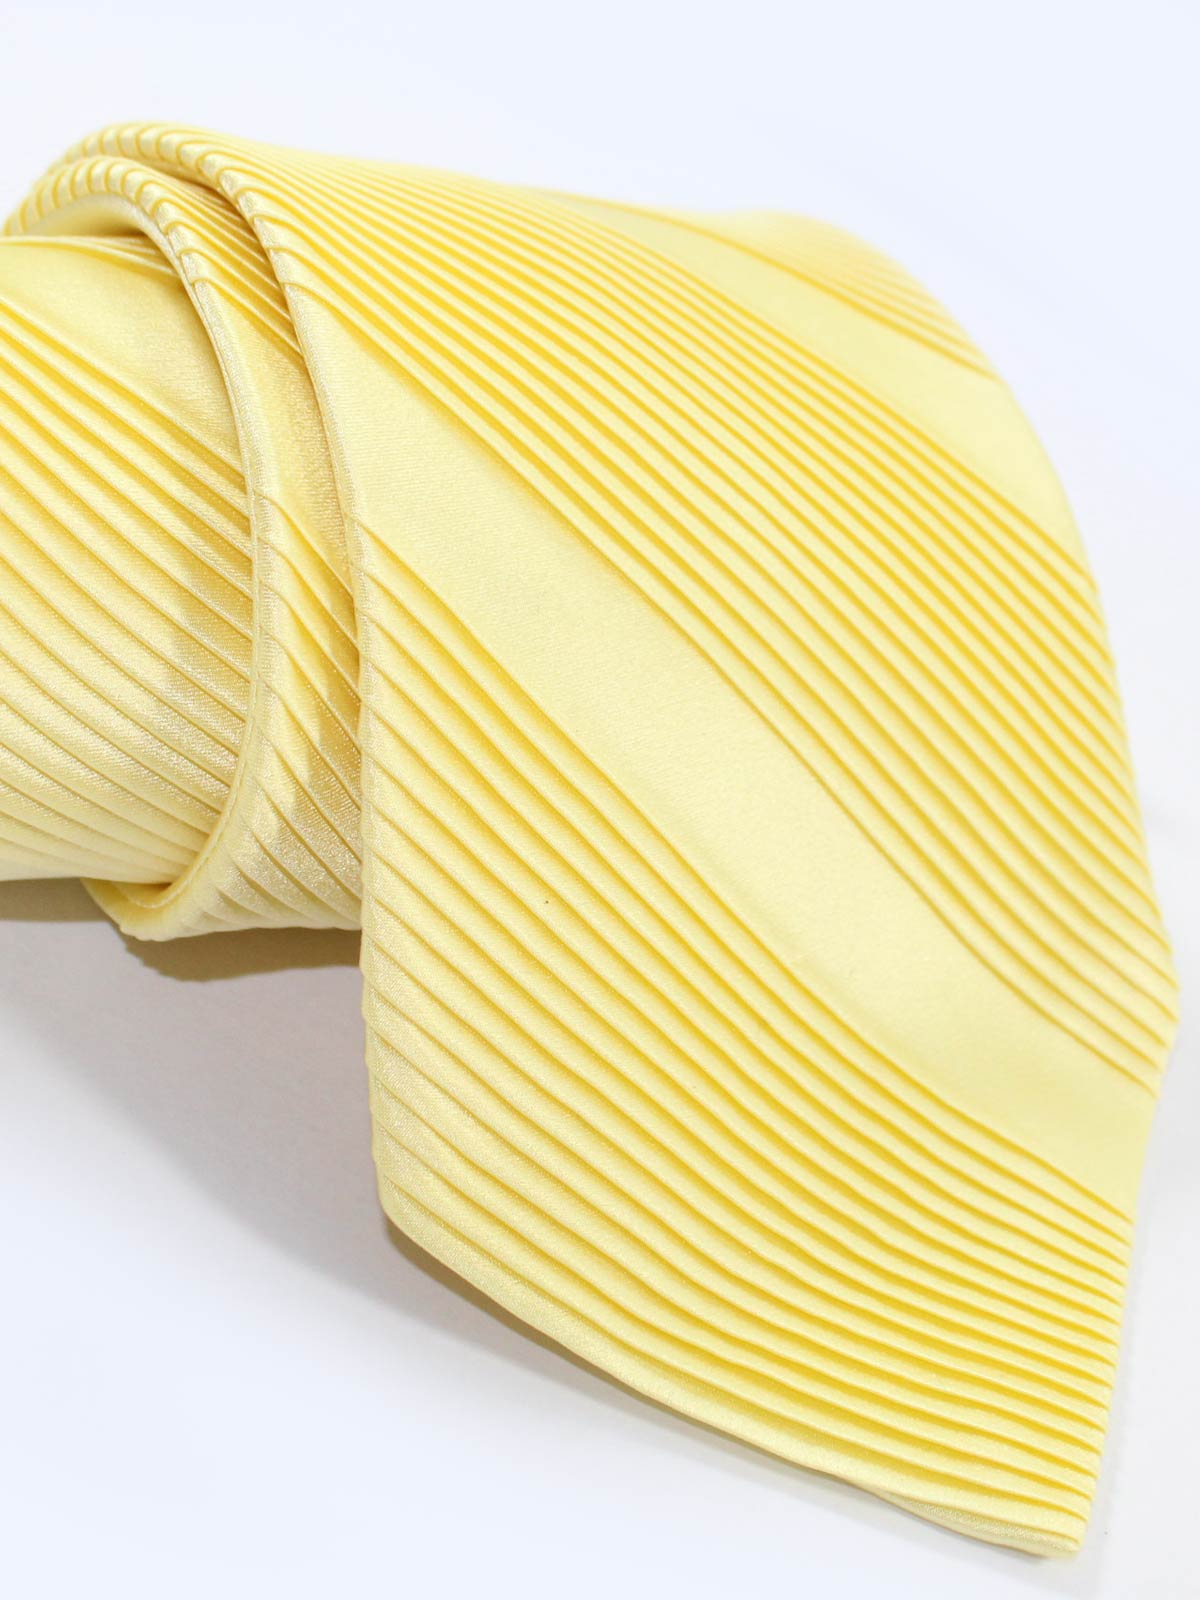 Stefano Ricci Pleated Silk Tie Light Yellow Solid - Wide Necktie